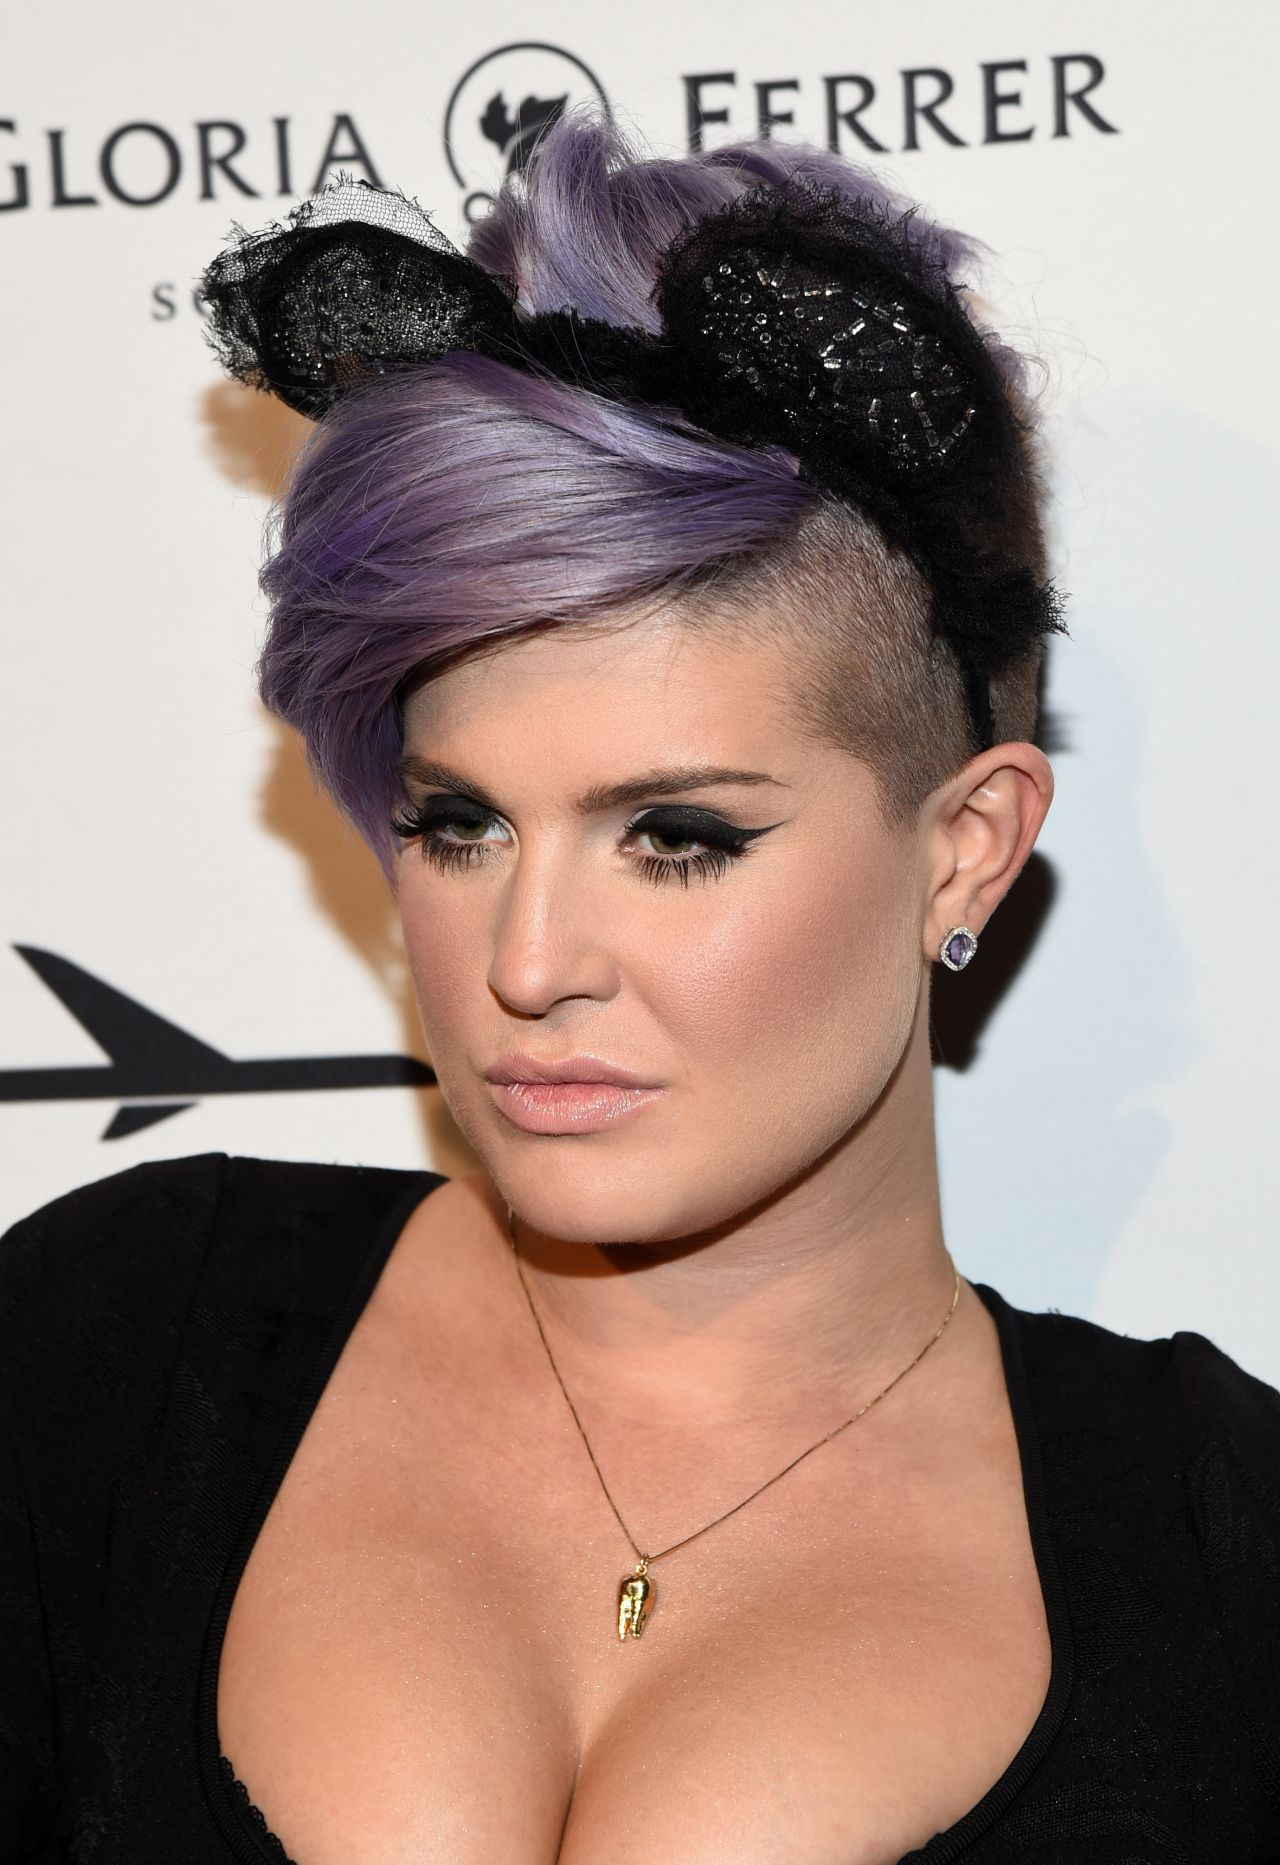 Kelly Osbourne Amfar La Inspiration Gala After Party In